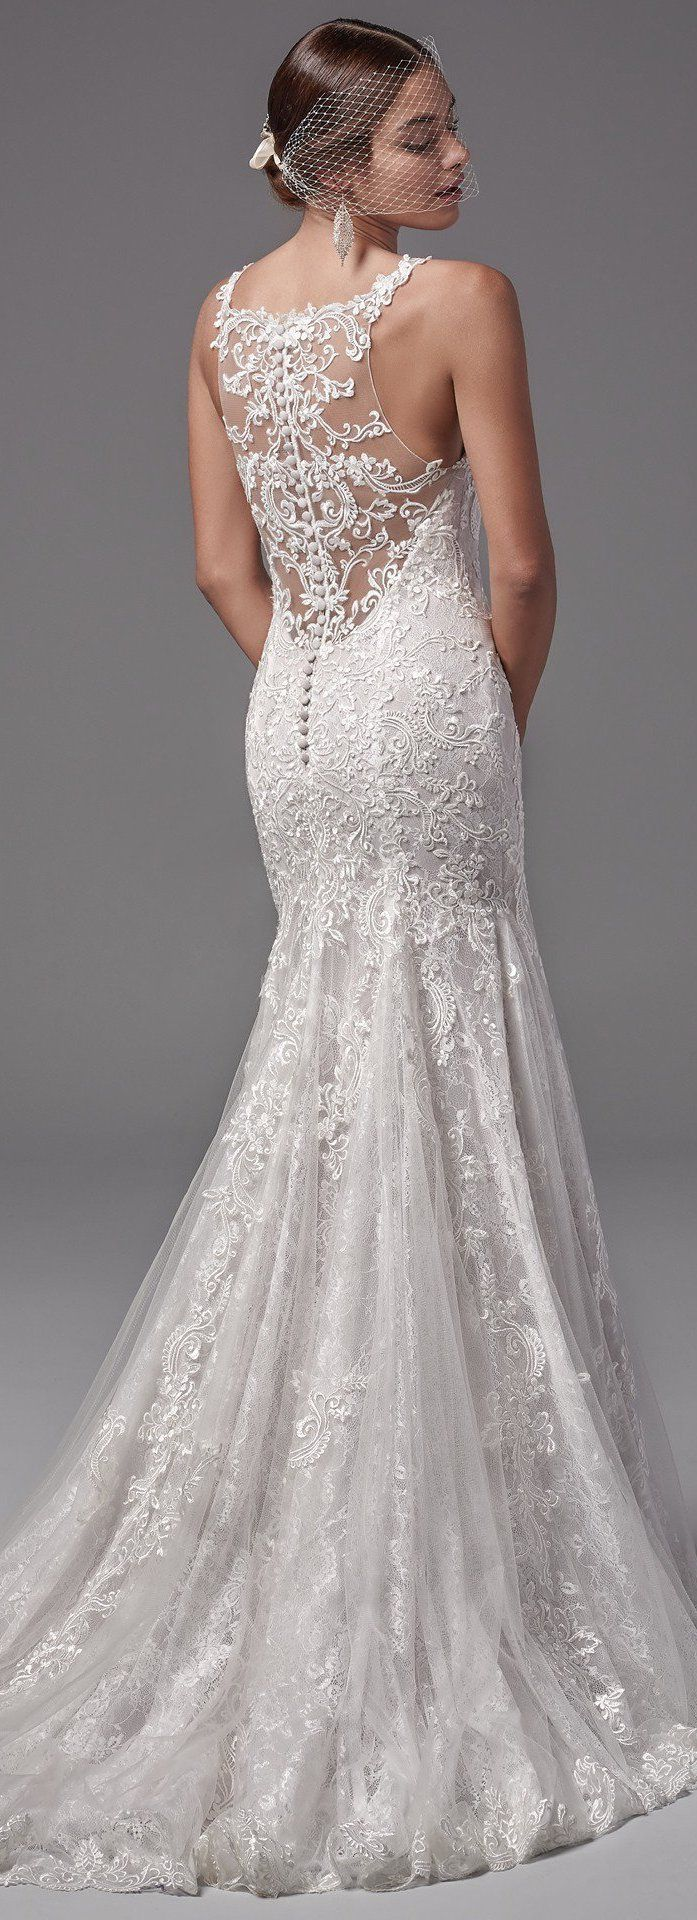 Lace back Sottero and Midgley Wedding Dress | @maggiesottero #sotteroandmidgley #midgleybride